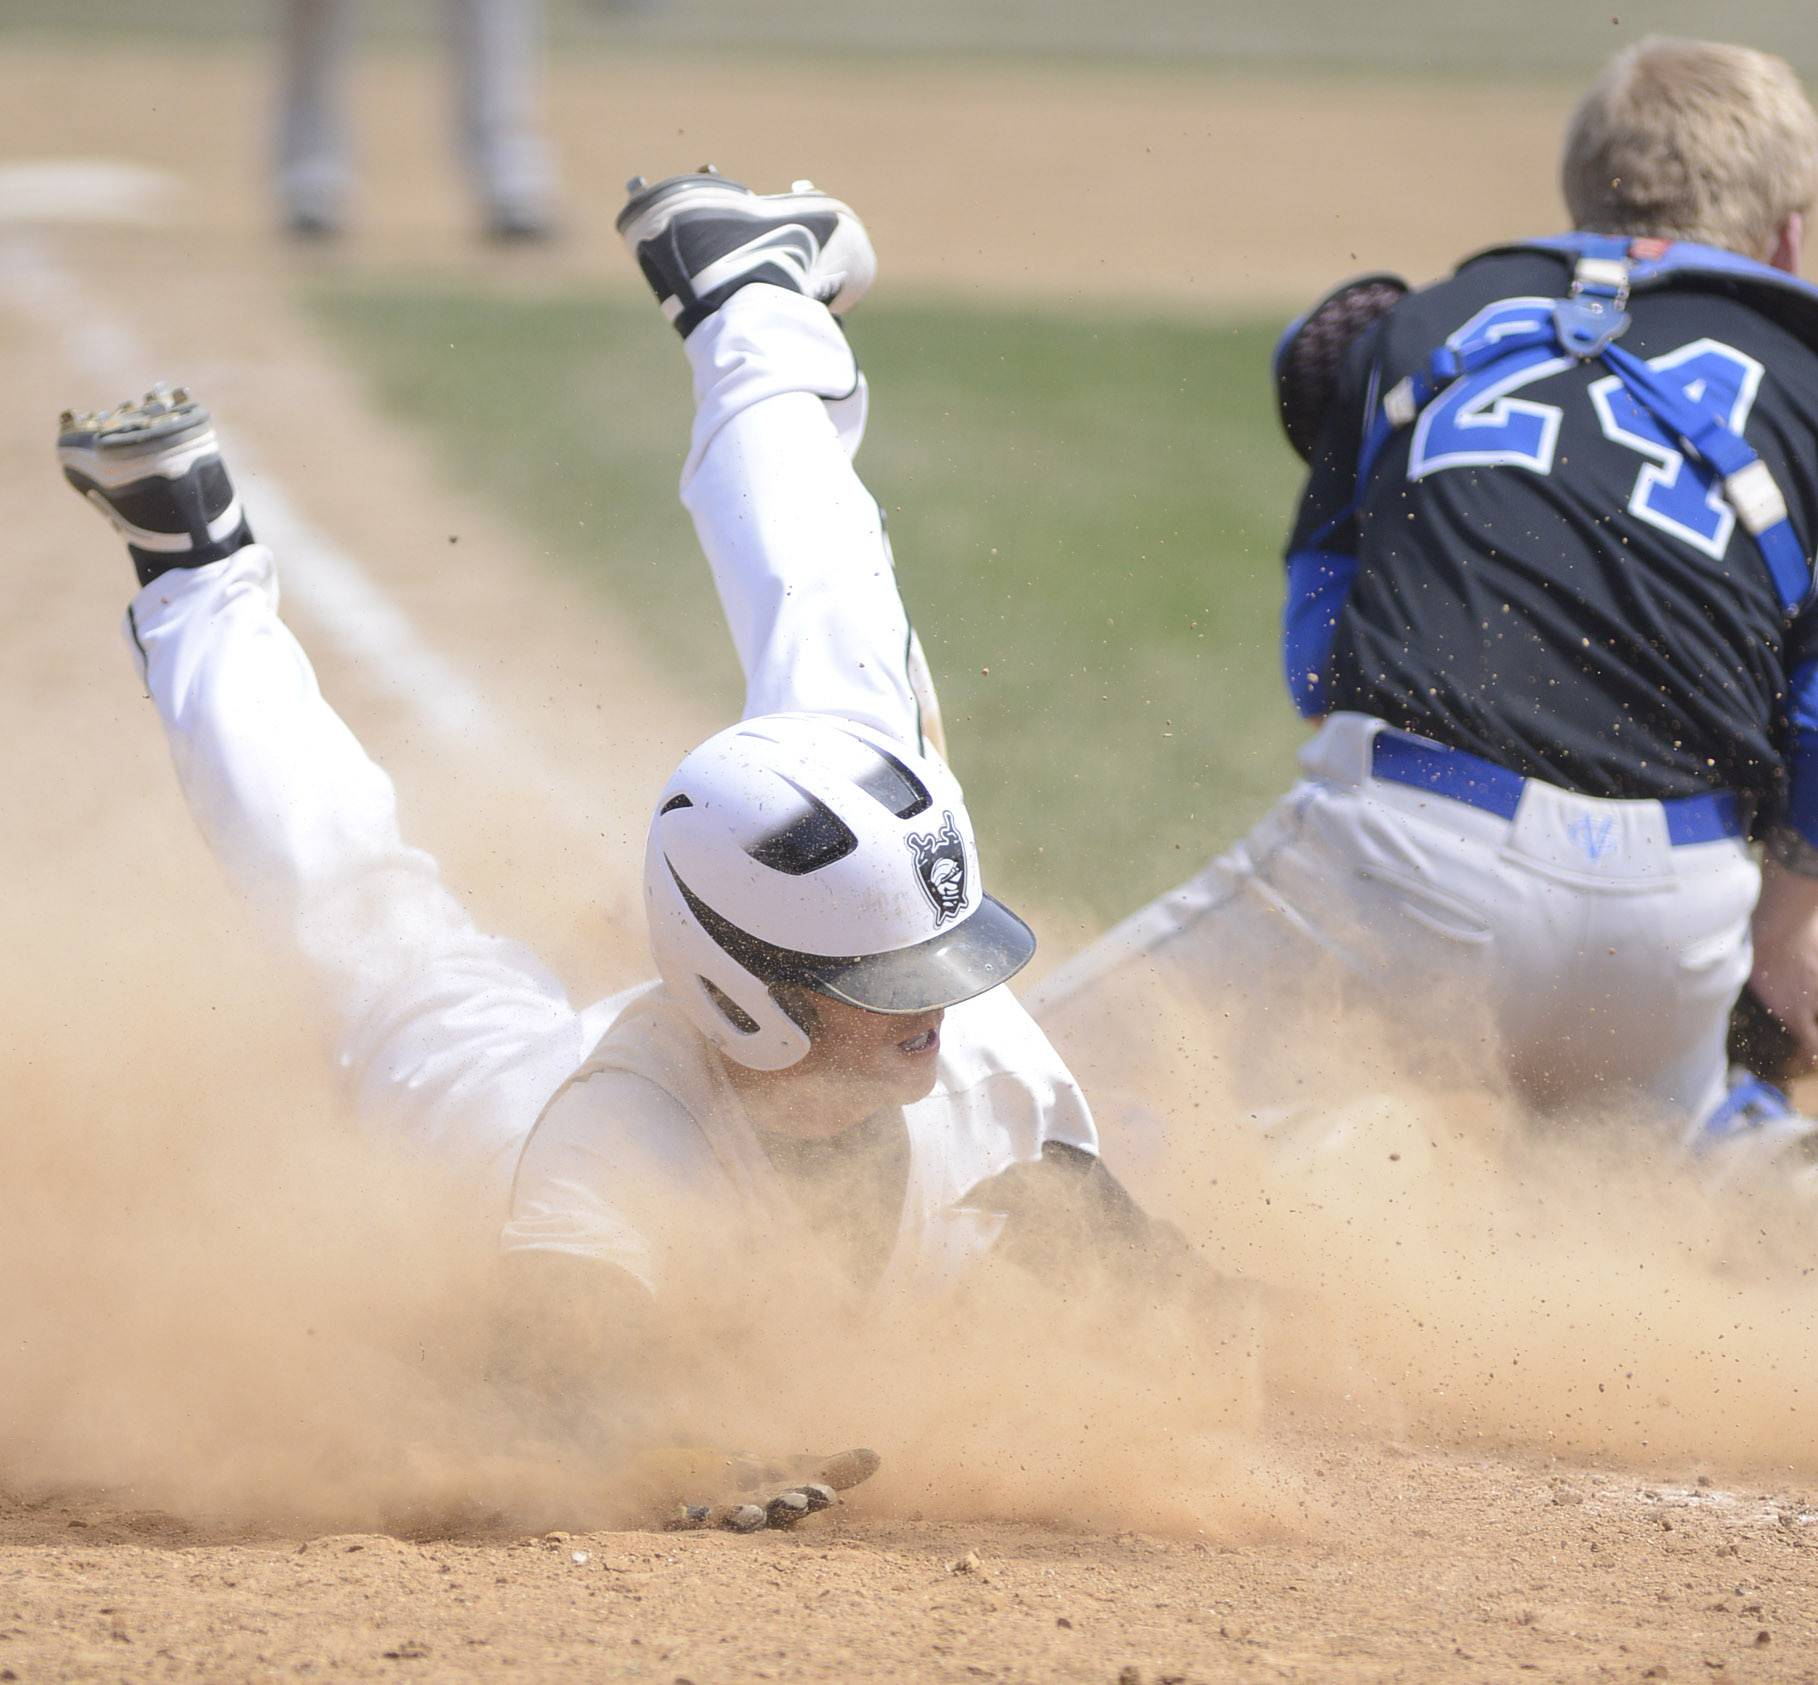 Kaneland's Joe Panico slides into home plate past Geneva catcher Nathan Montgomery to break the 6-6 tie in the ninth inning on Saturday, April 19.